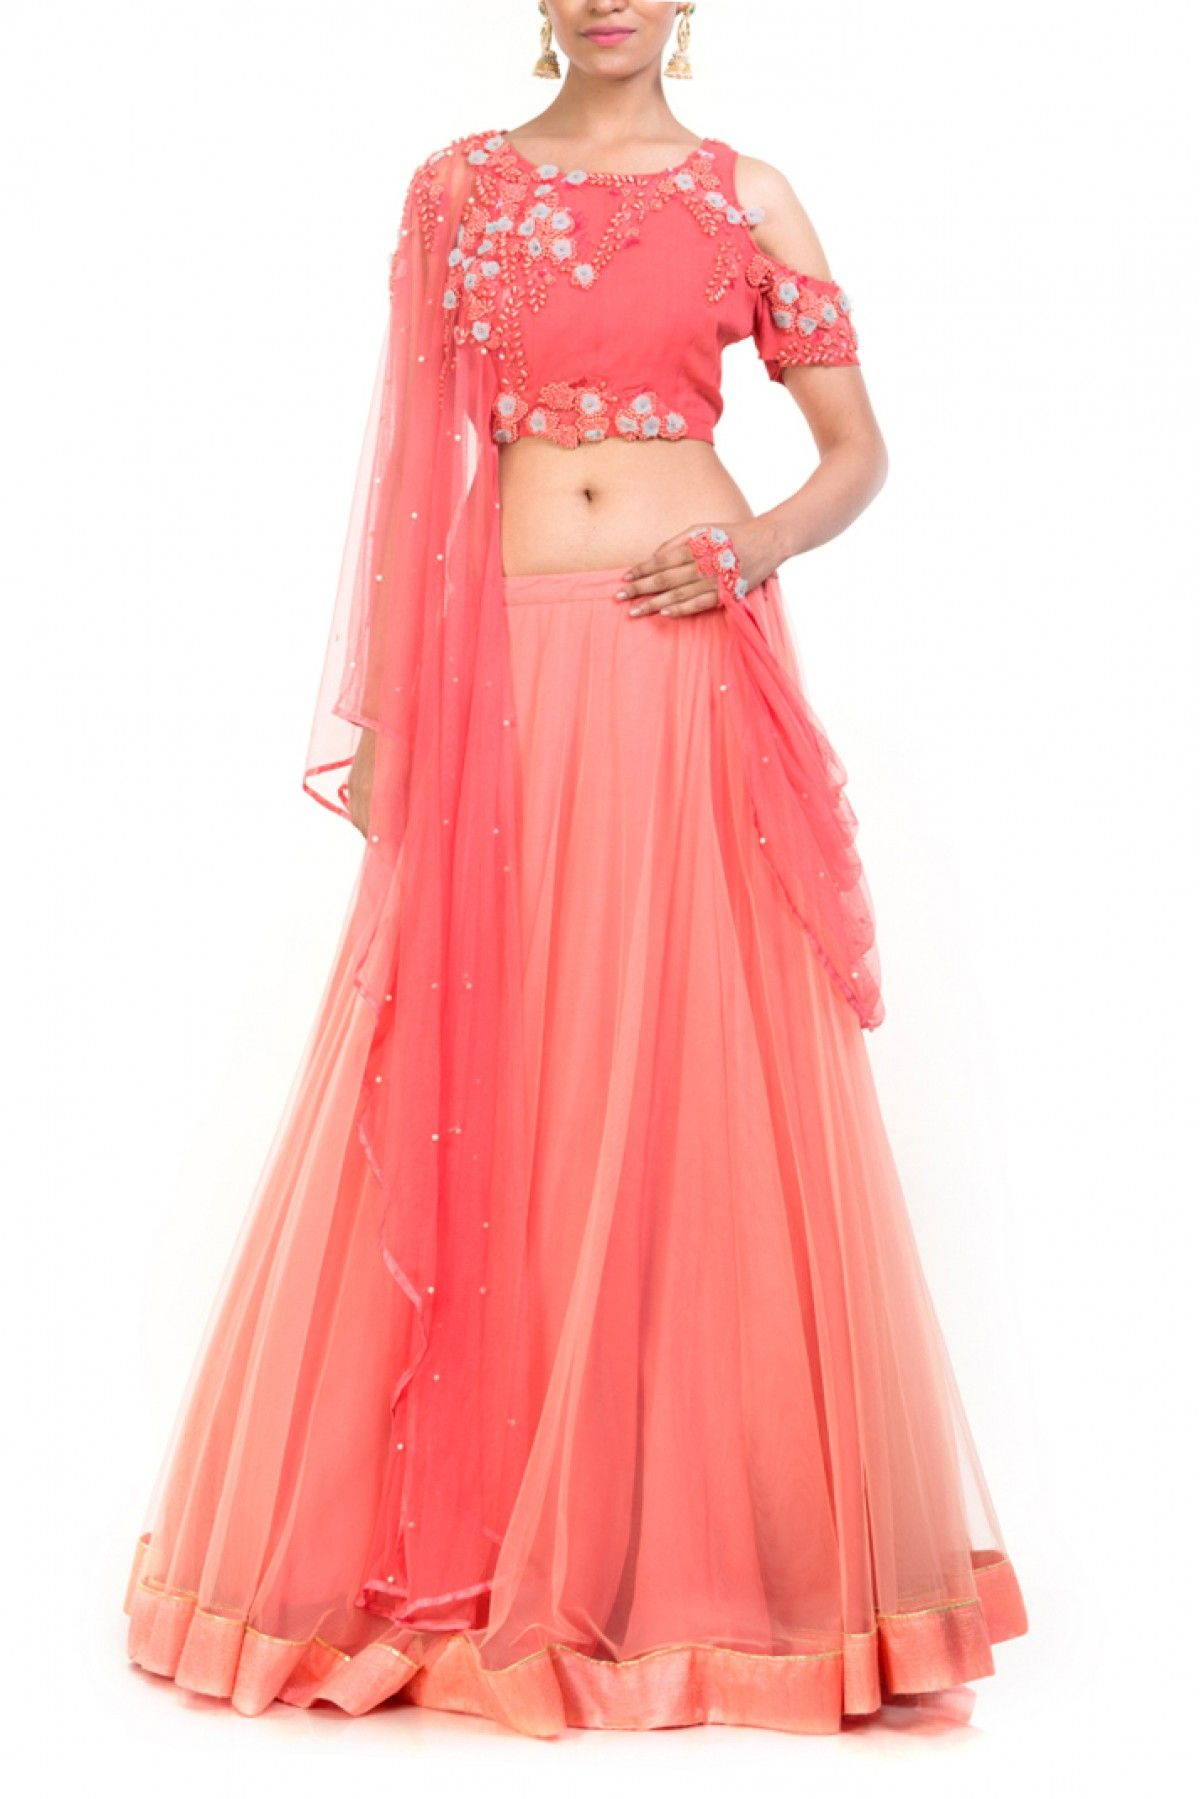 db94f52435 Featuring a pink cold shoulder crop top with a pearl scattered dupatta  attached on the right